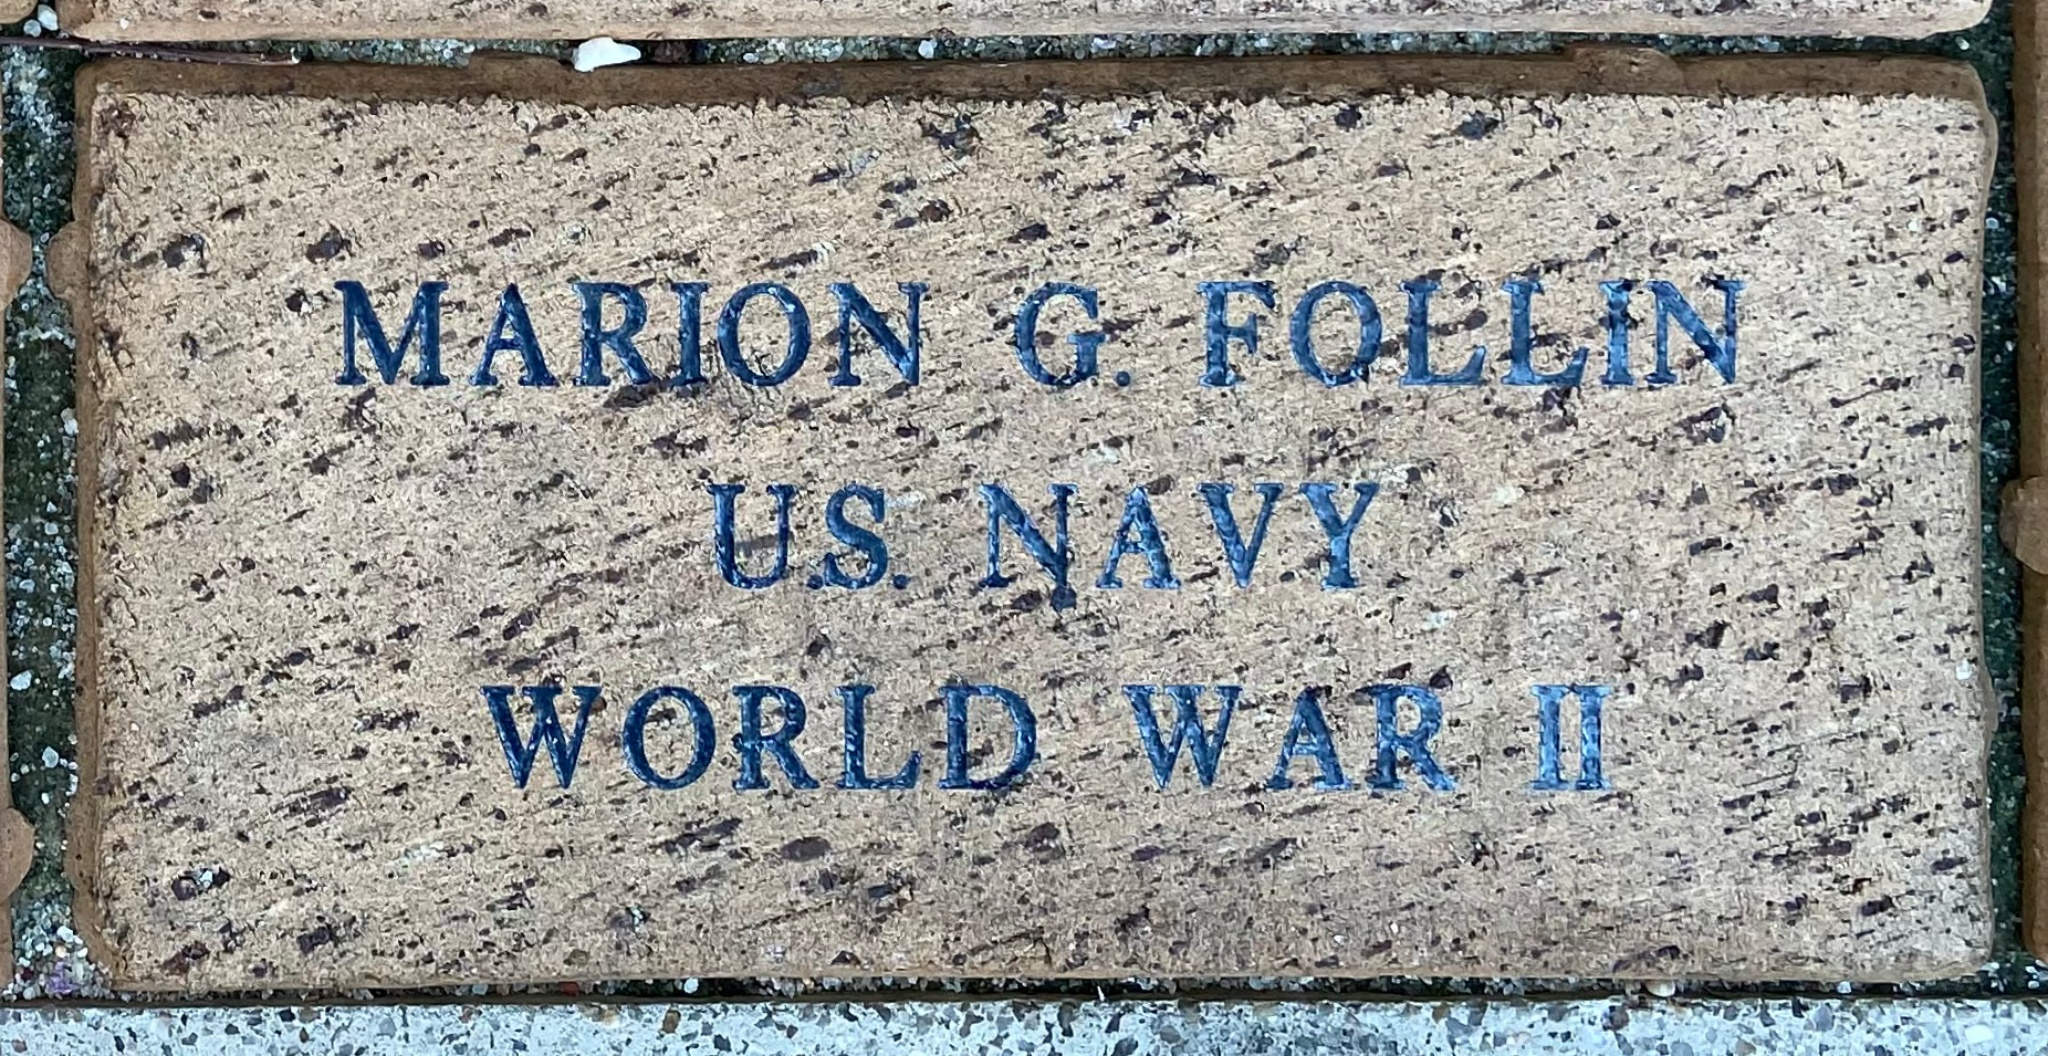 MARION G. FOLLIN U.S. NAVY WORLD WAR II